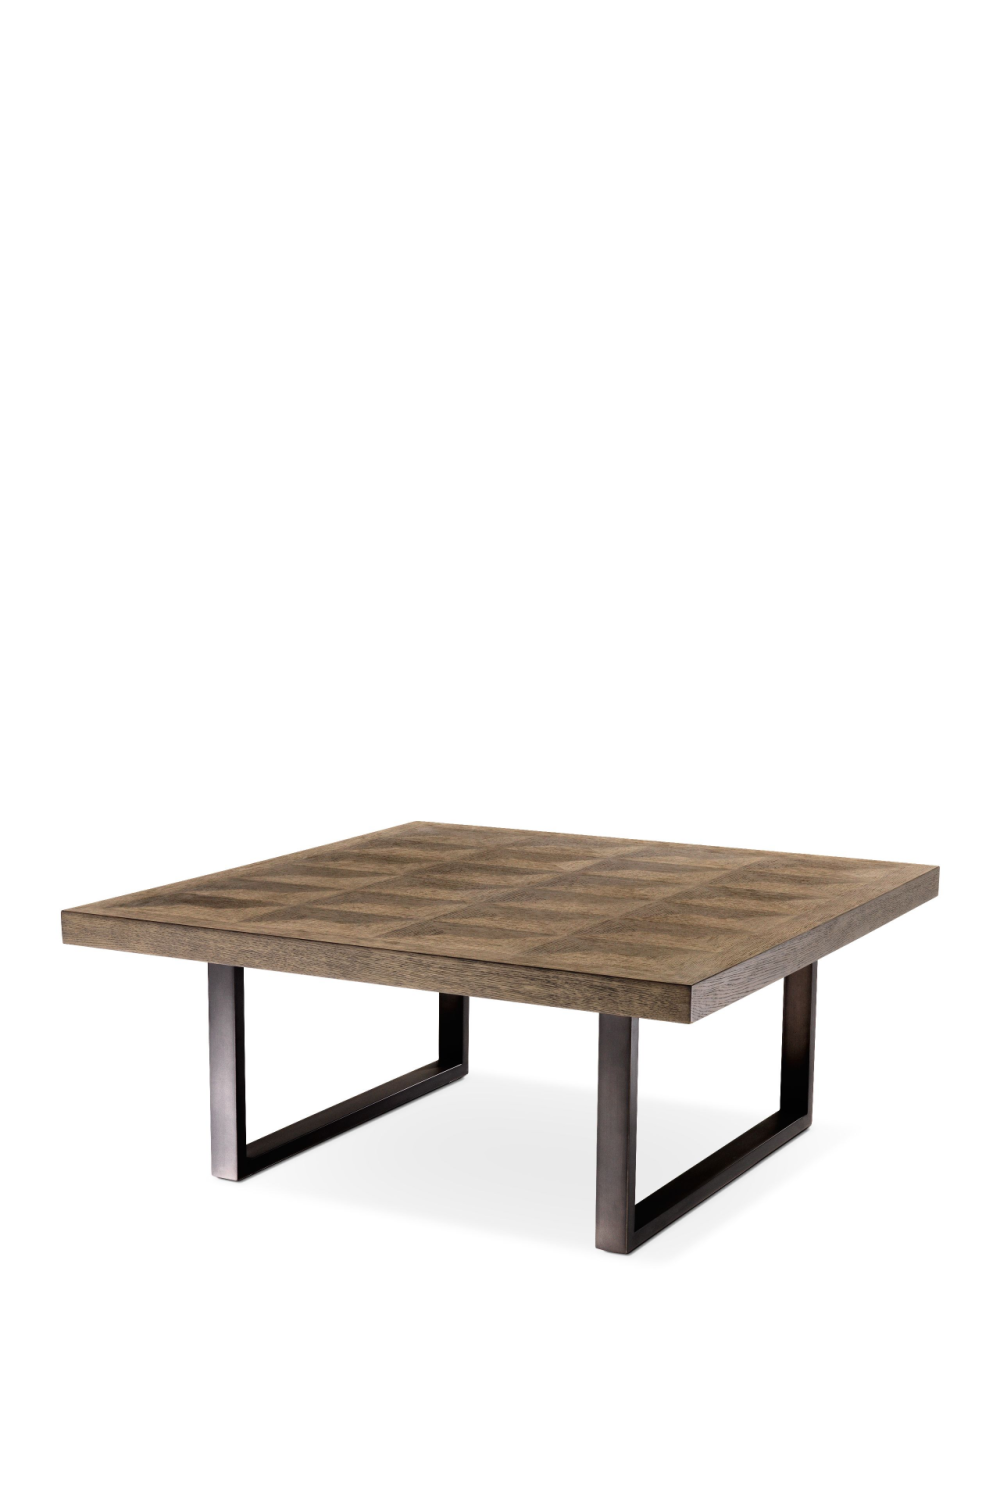 Industrial Oak Coffee Table | Eichholtz | #1 Eichholtz Retailer